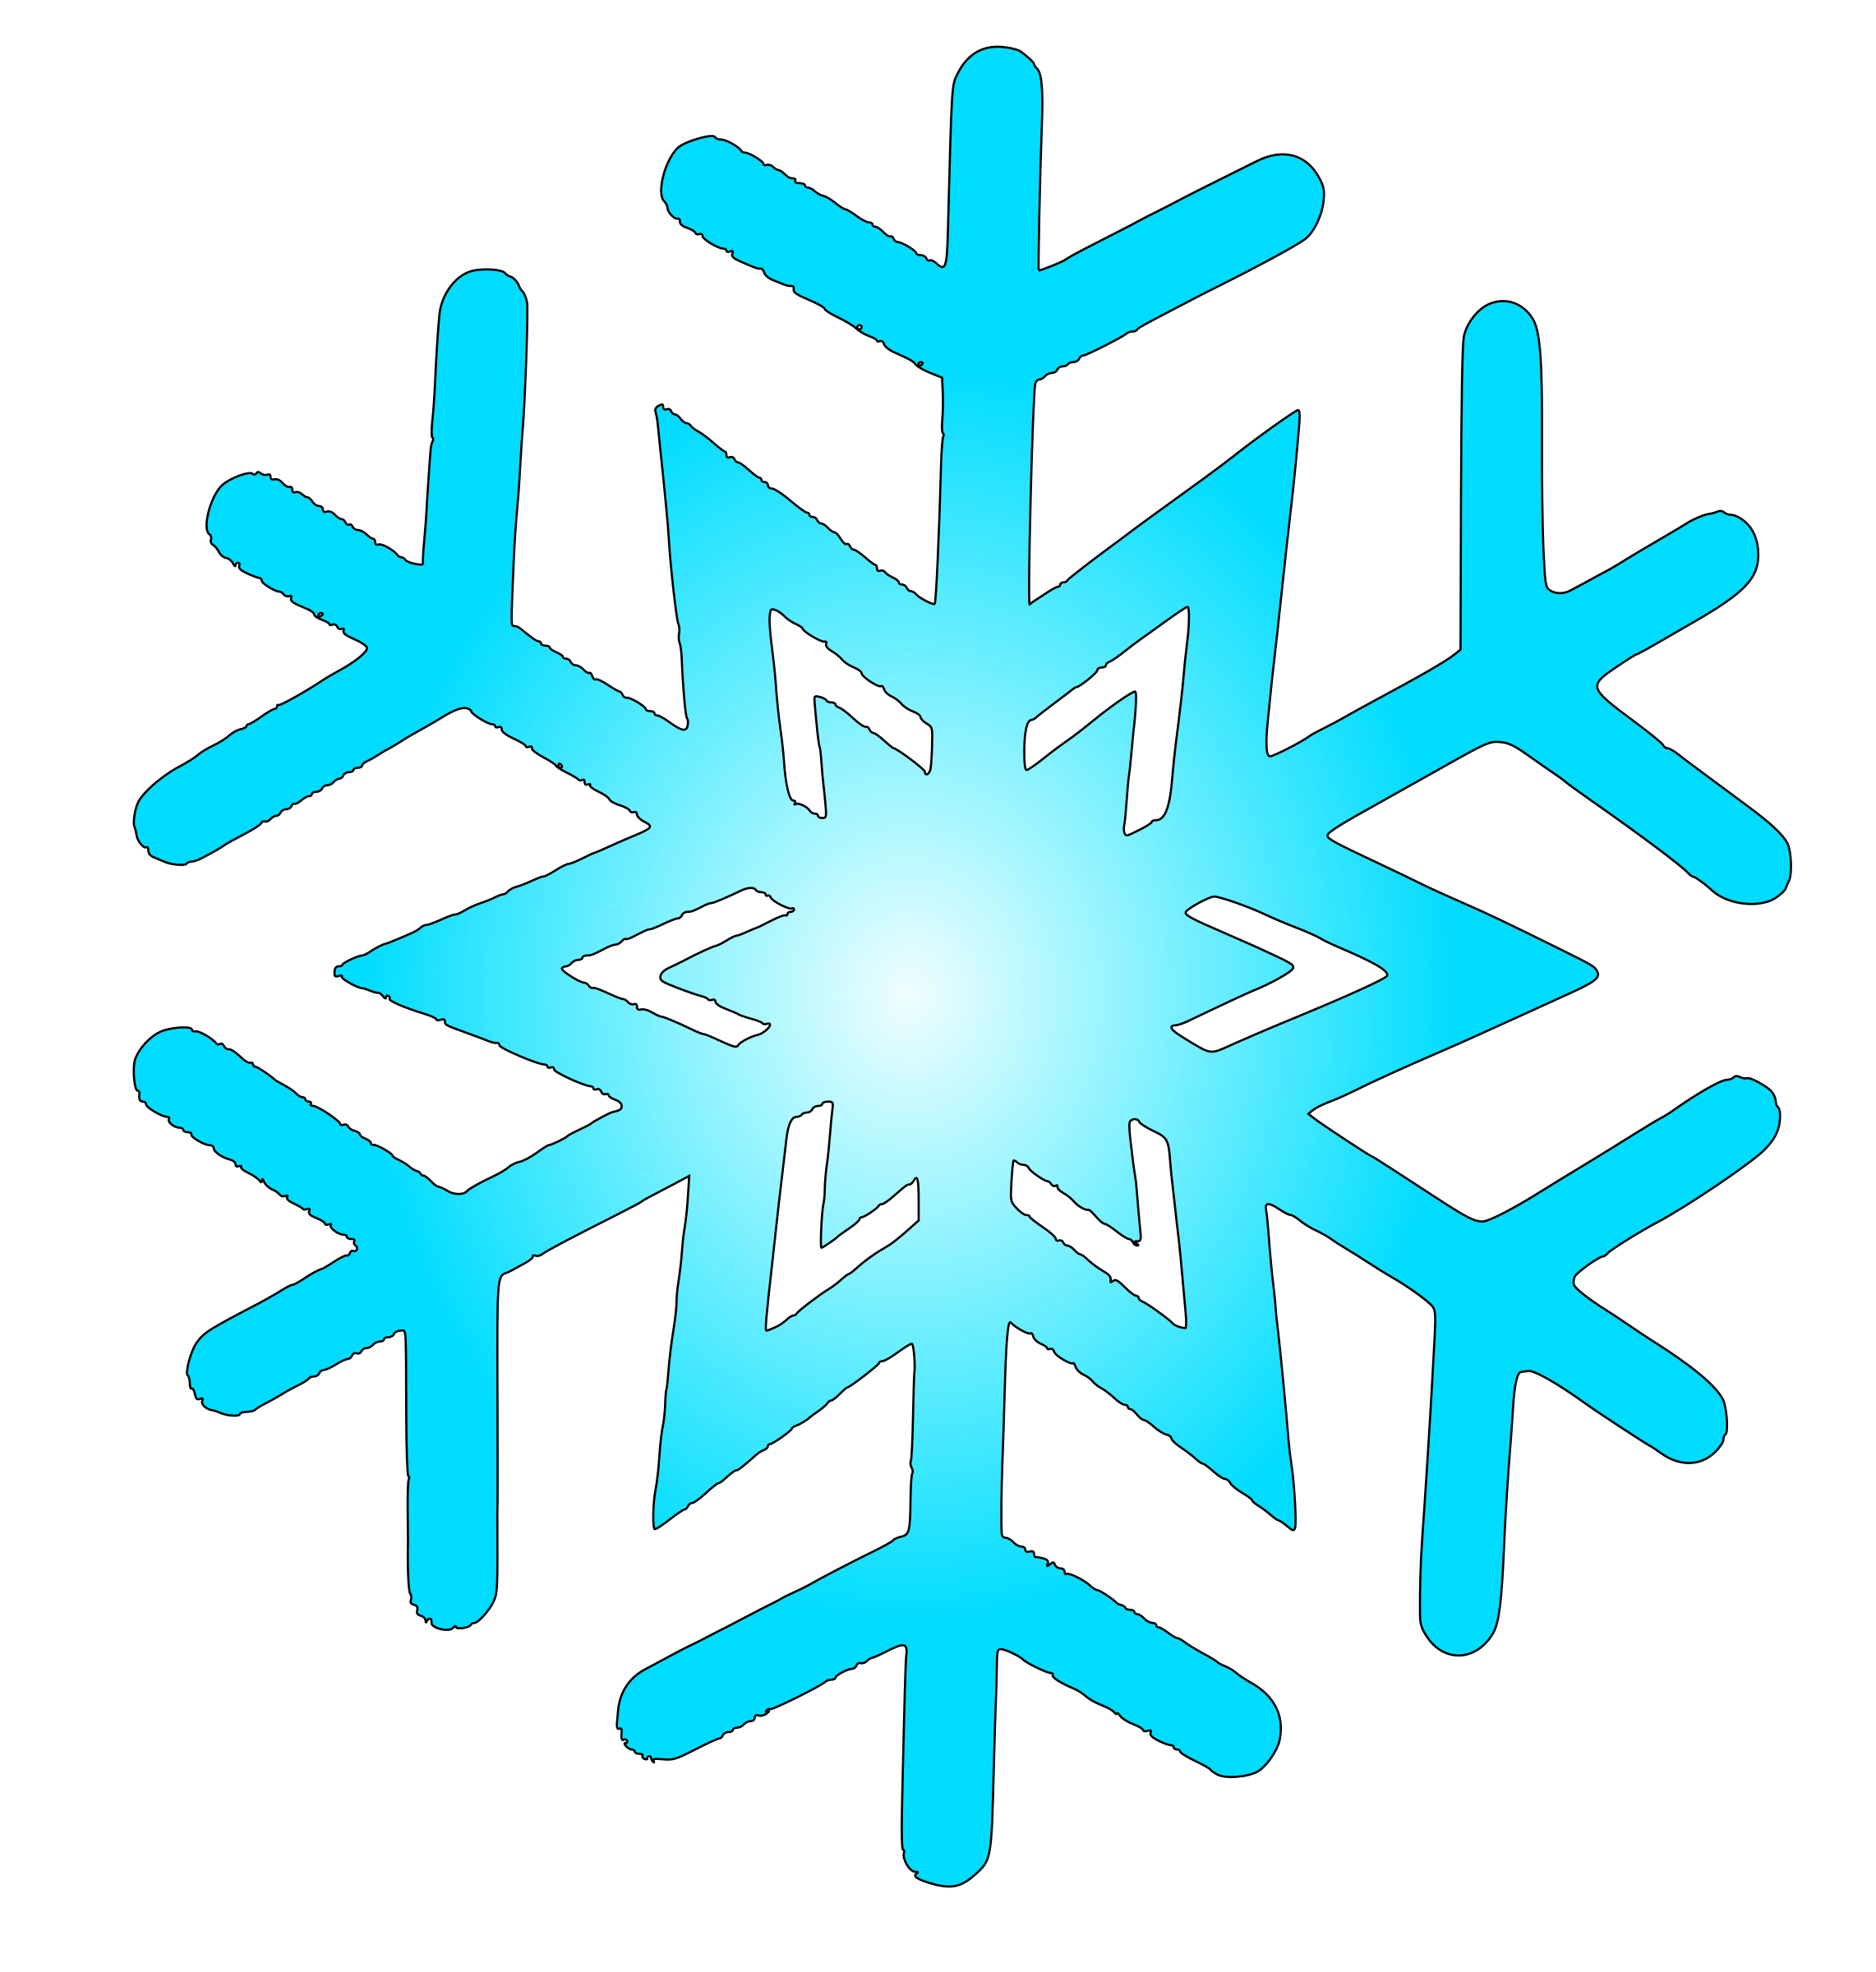 Winter clipart flake. Snow big image png